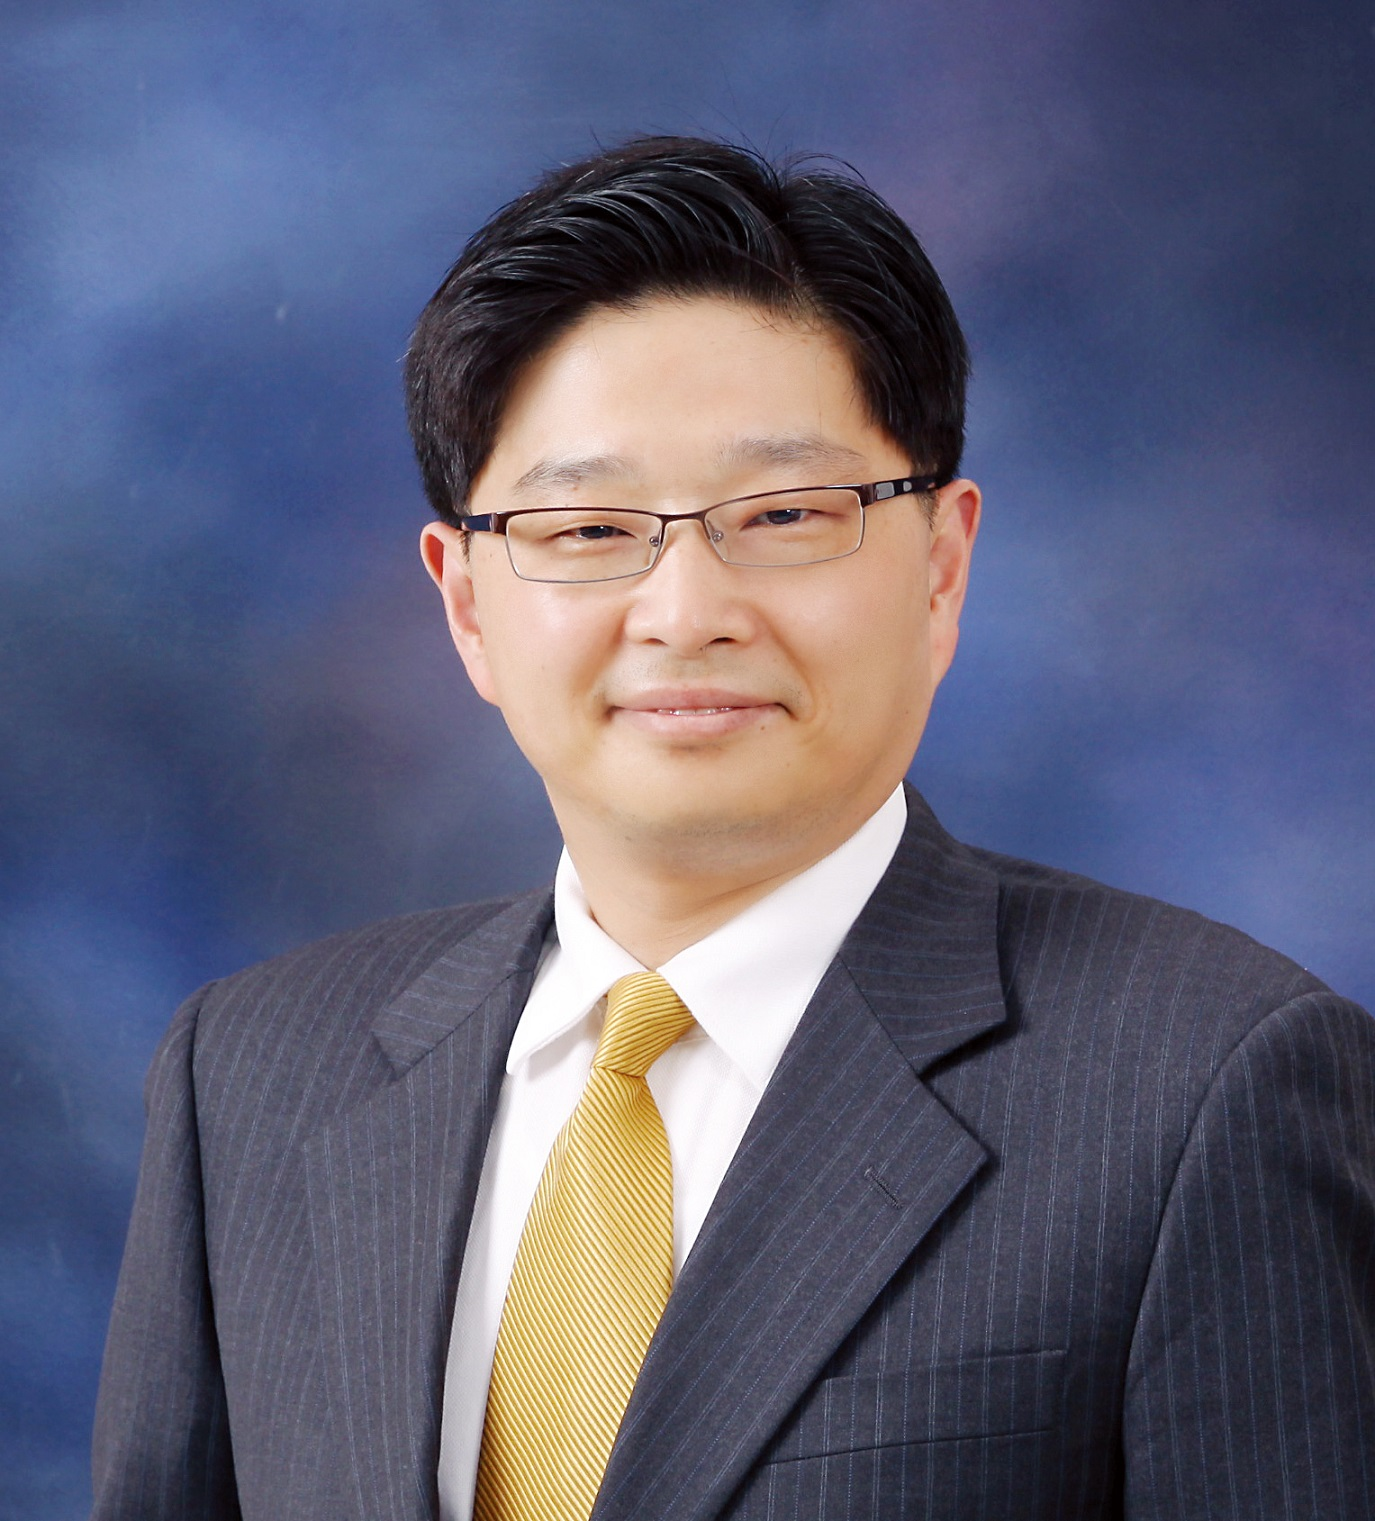 Photo of Dong Young Kim